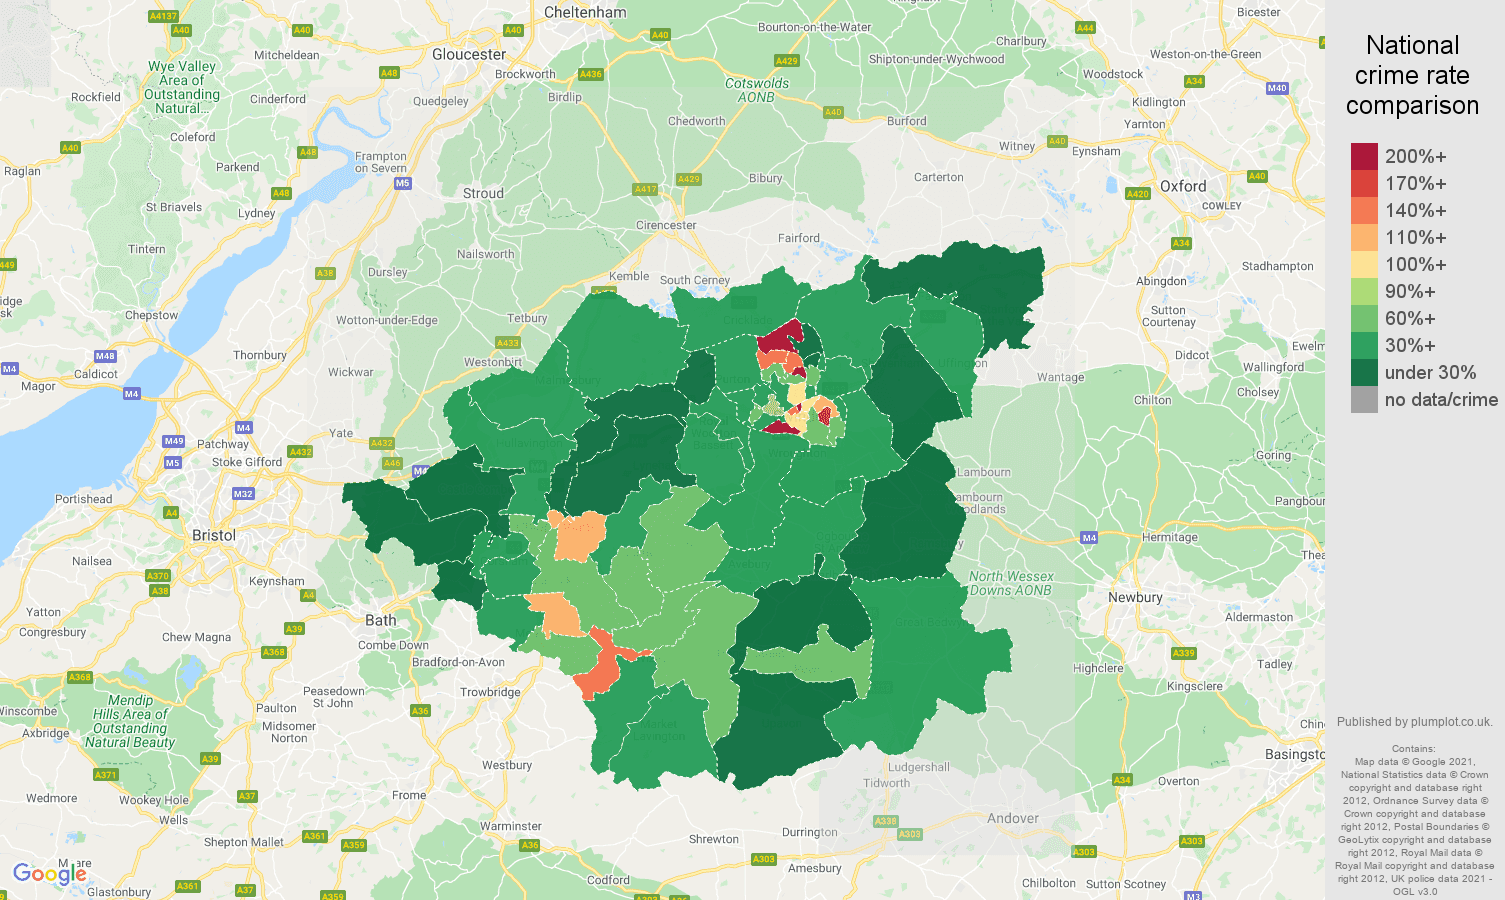 Swindon antisocial behaviour crime rate comparison map